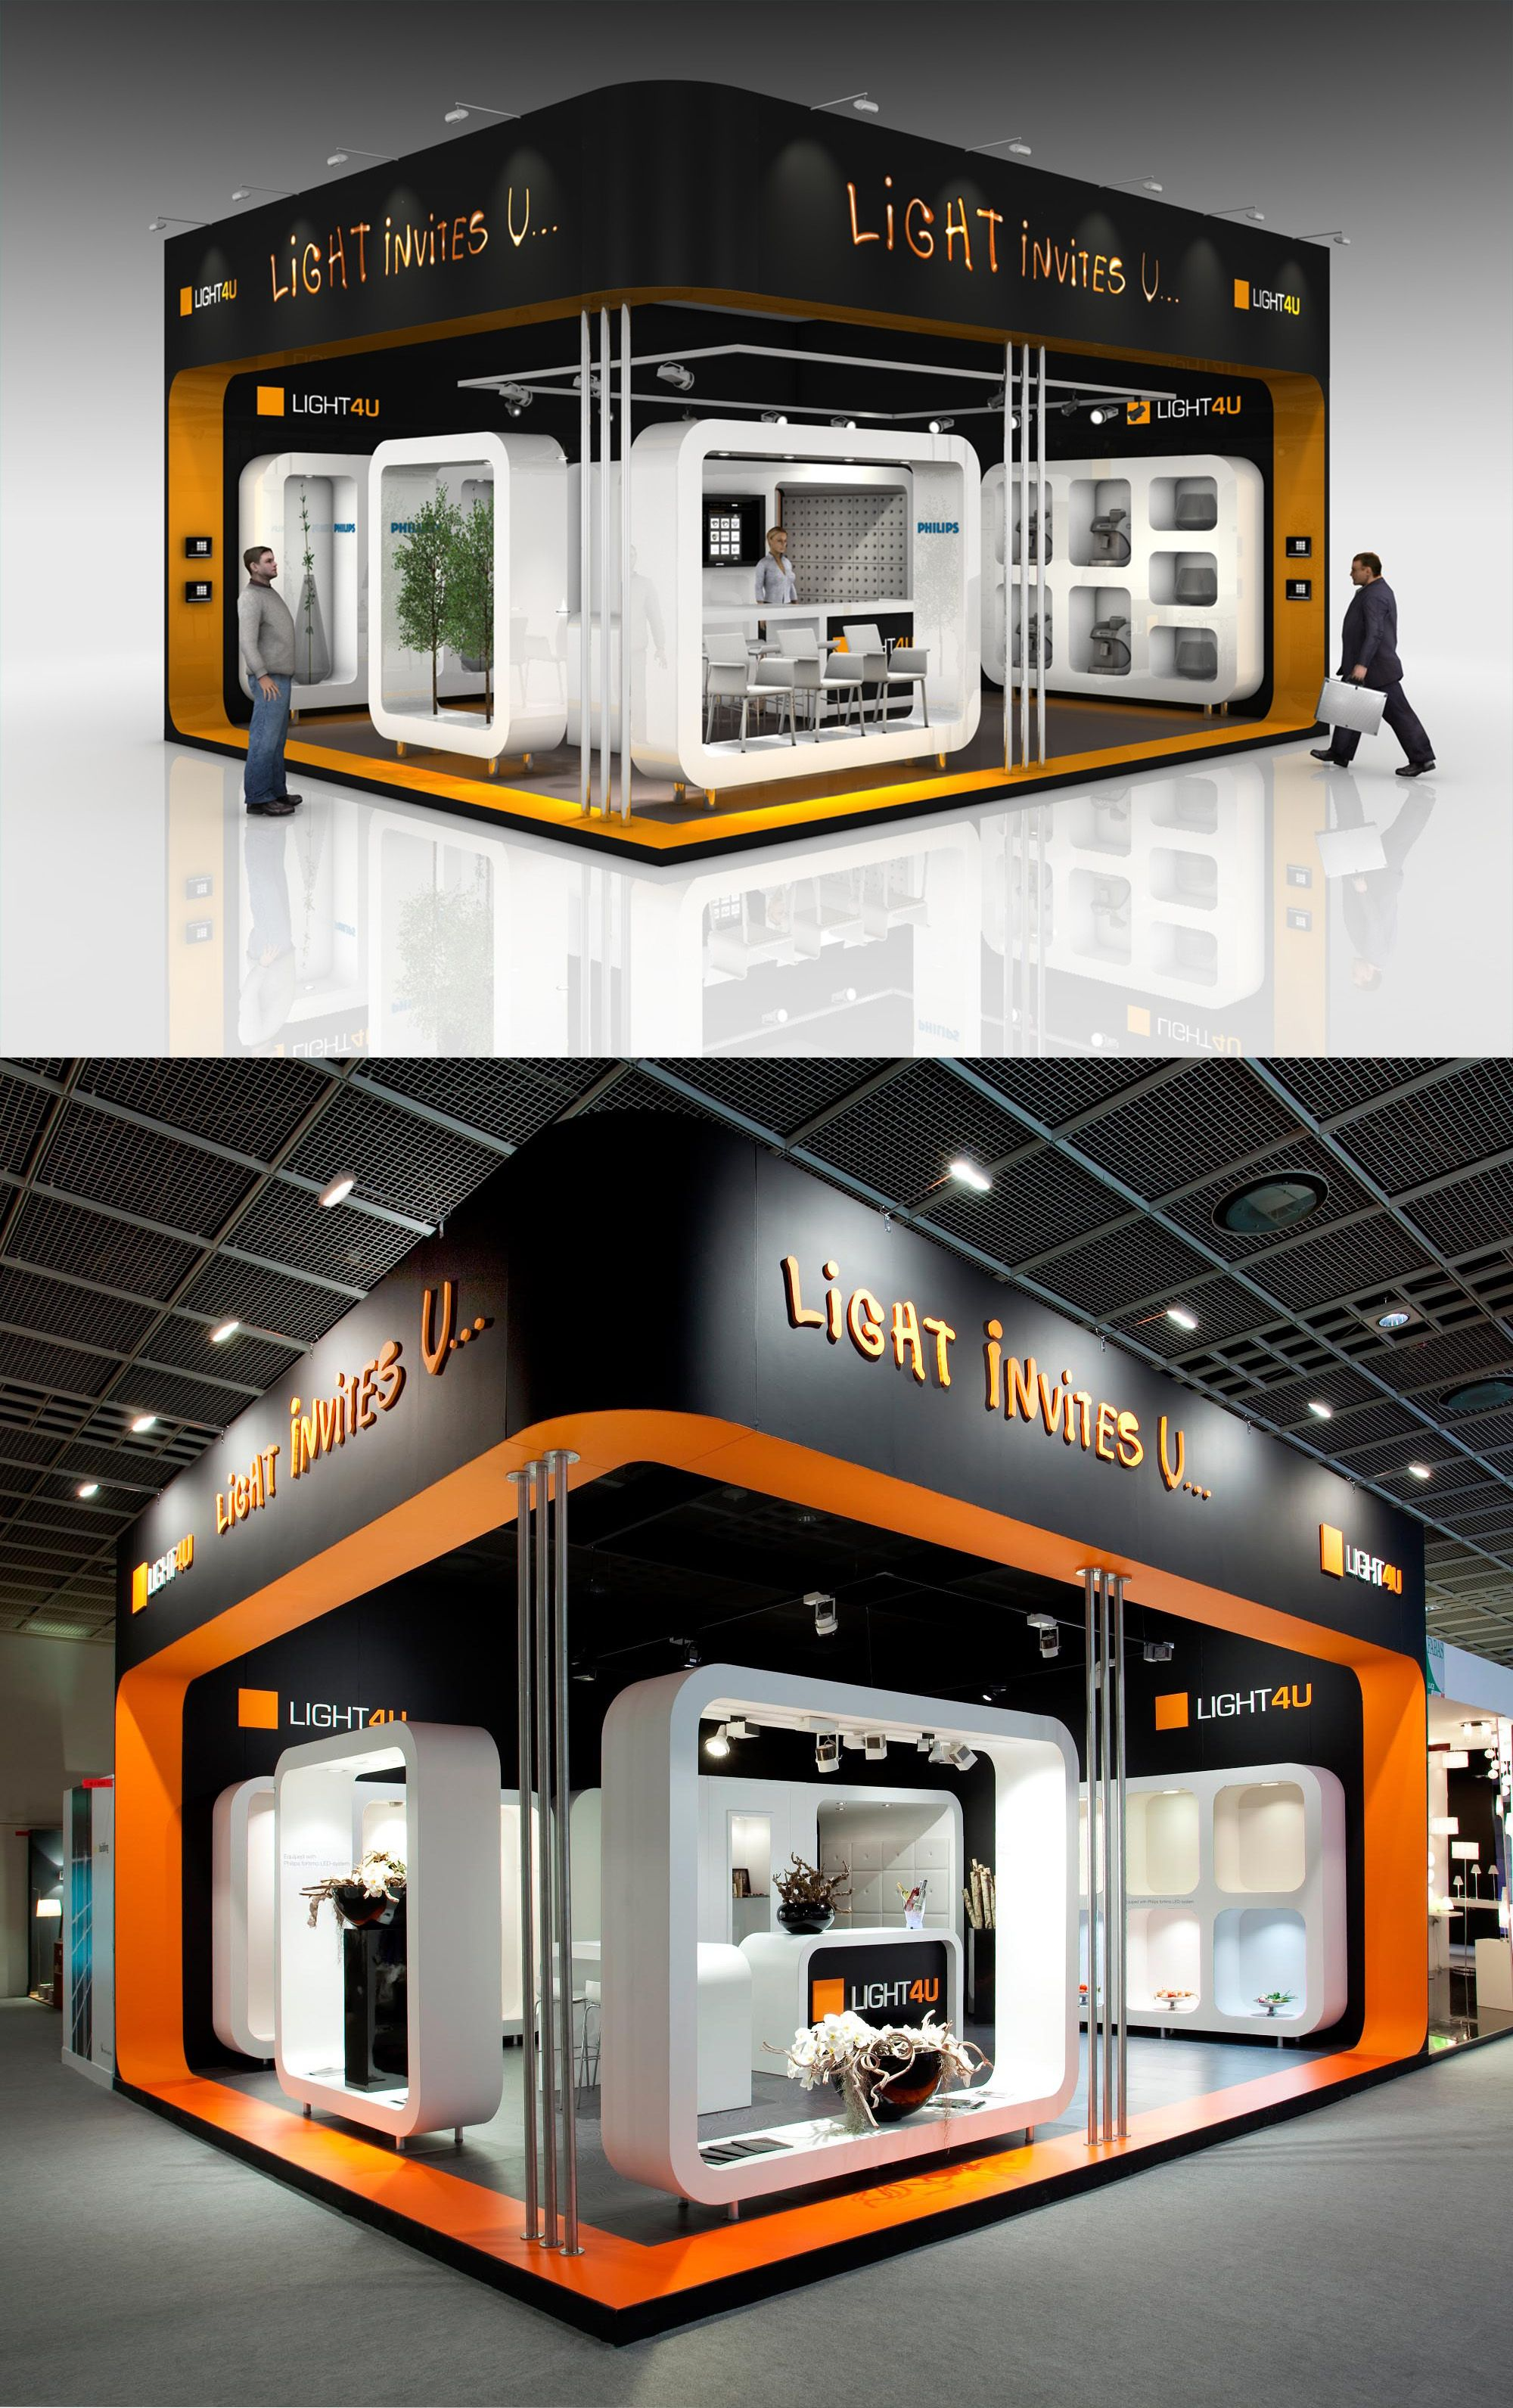 Exhibition Stand Building : Exhibition stand design from the inside stand building at light